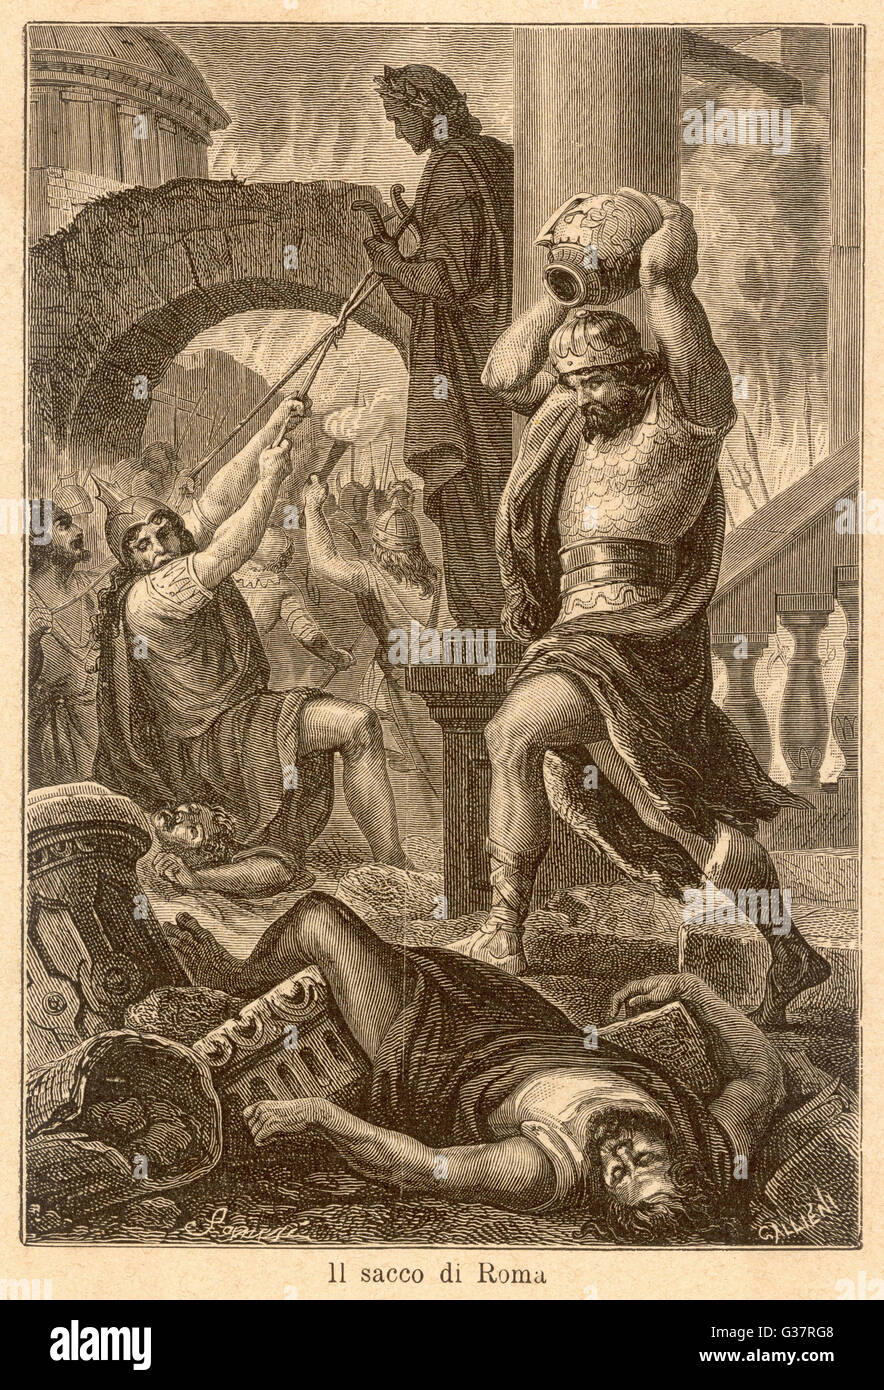 THE FALL OF ROME Alaric's Visigoths sack Rome,  displaying a deplorable lack  of esthetic appreciation      - Stock Image